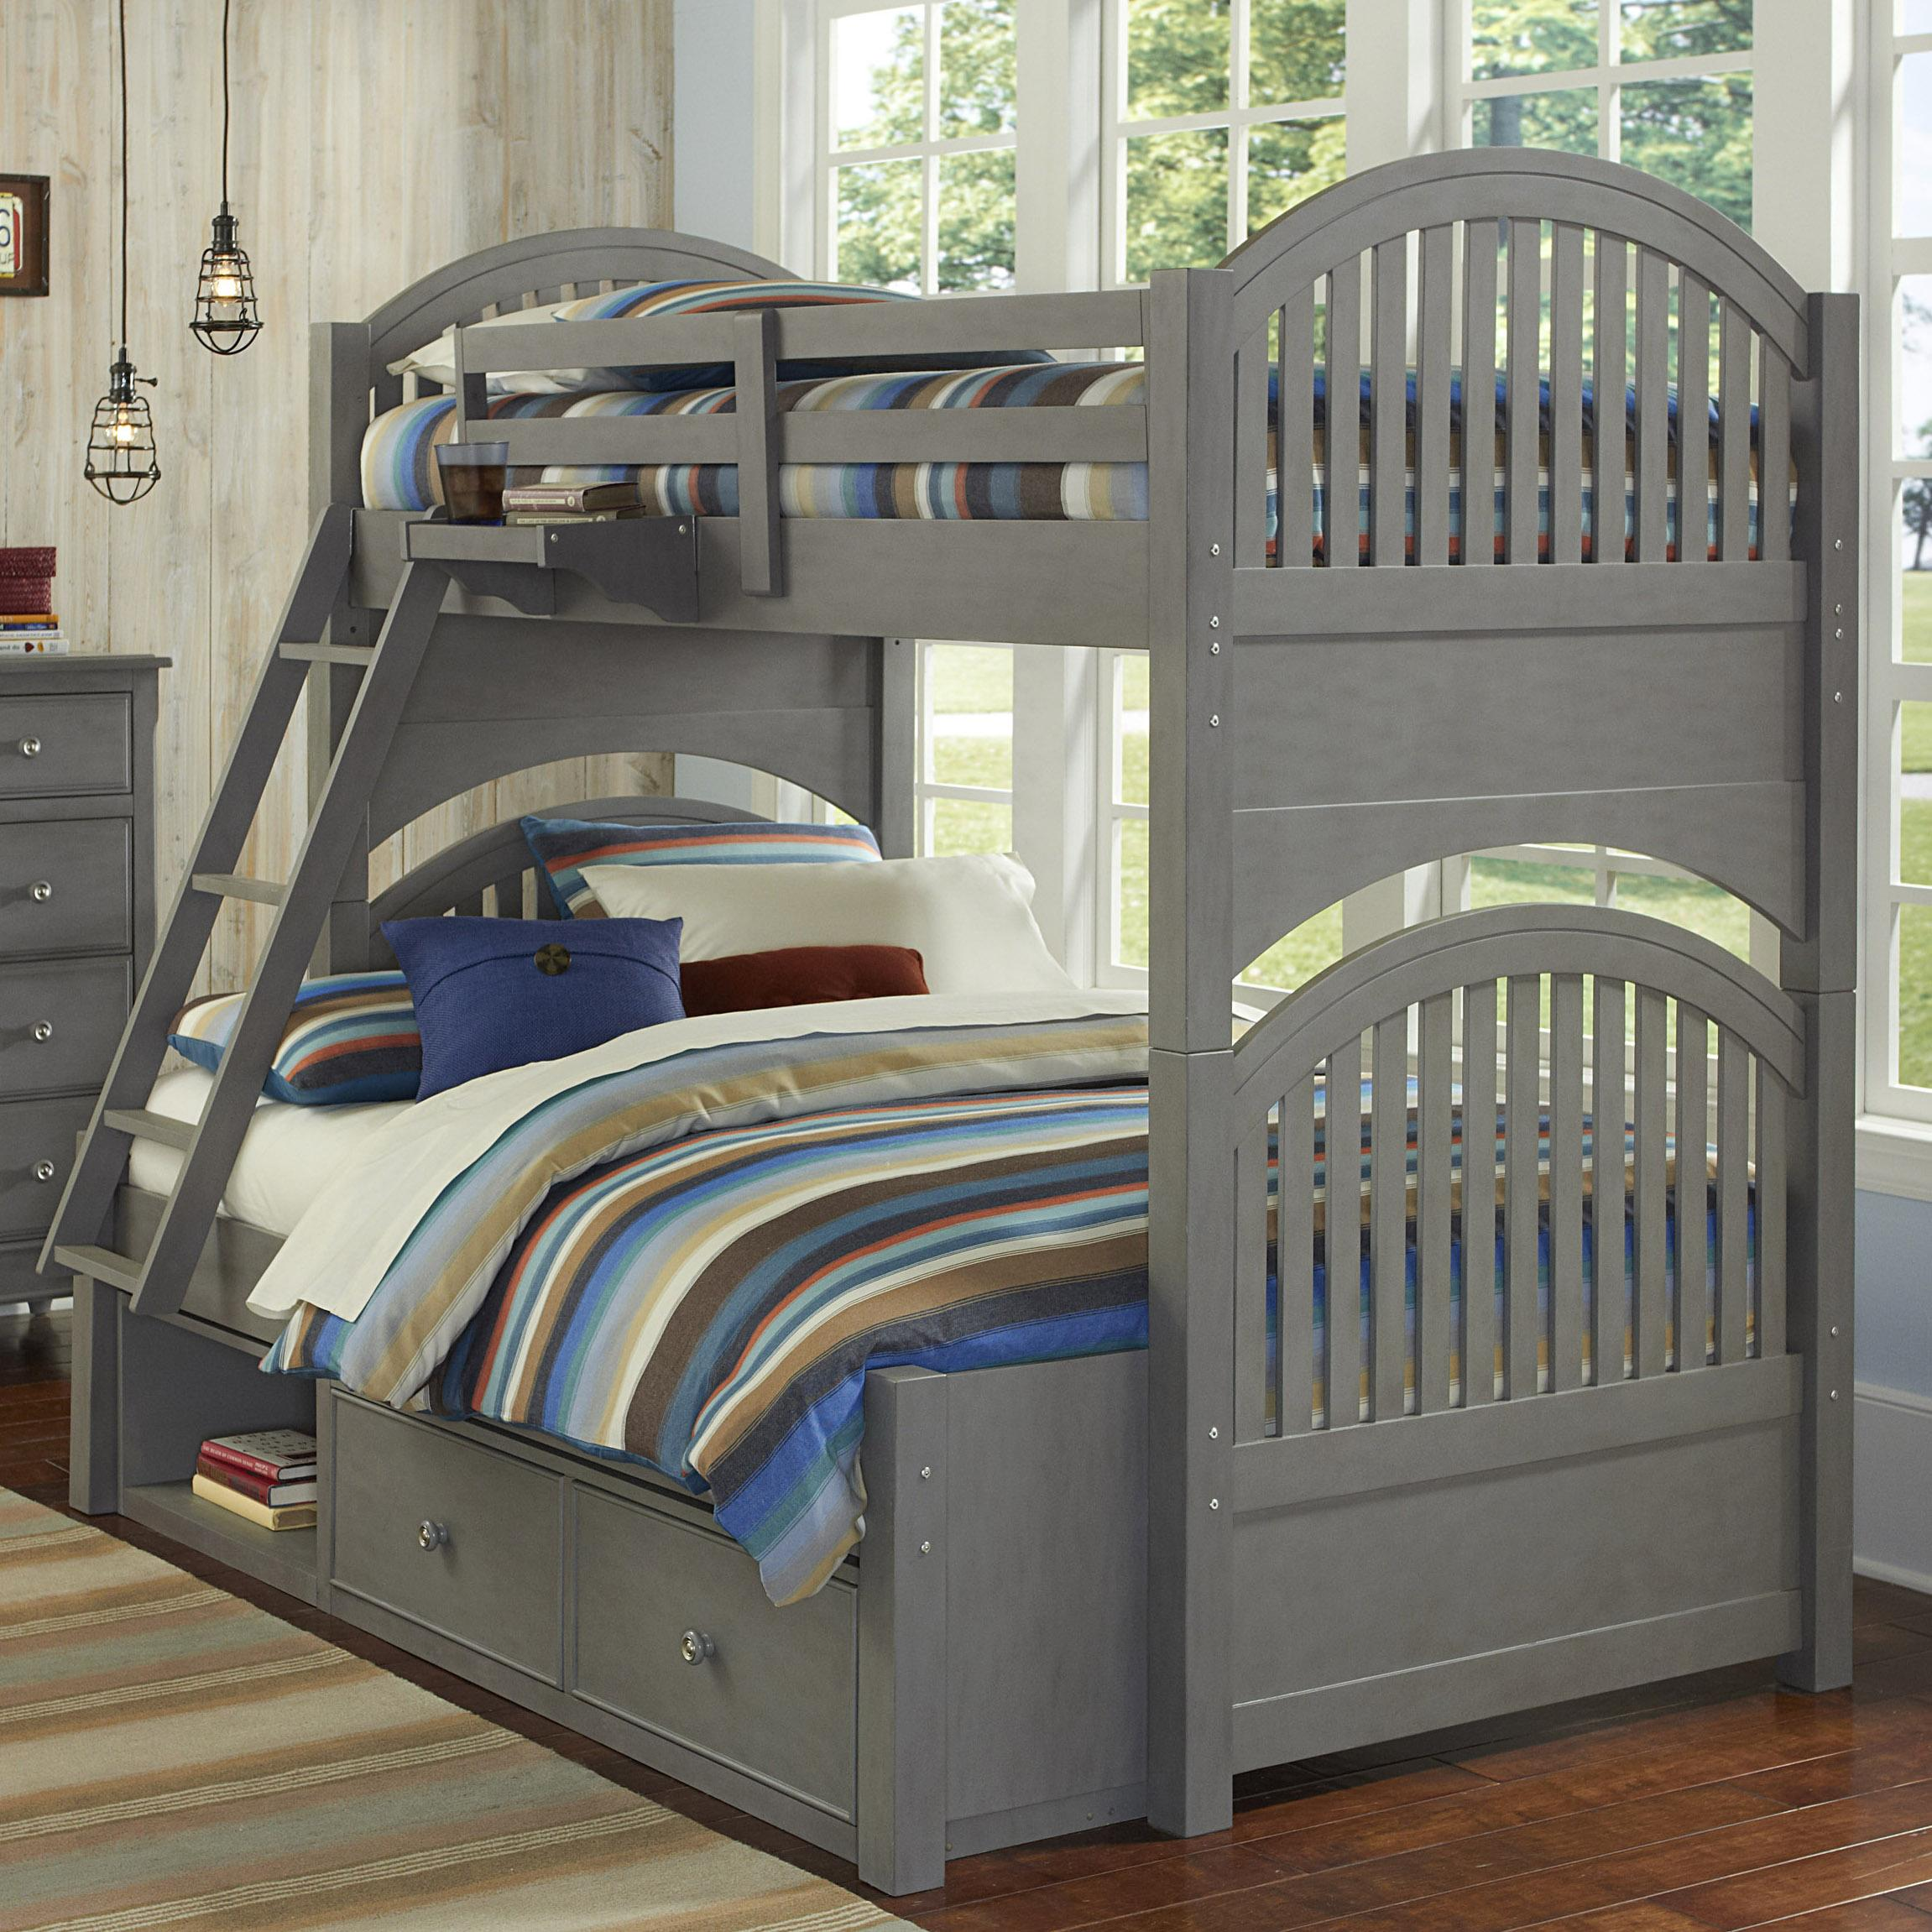 NE Kids Lake House Adrian Twin over Full Bunk + Storage - Item Number: 2035+2580